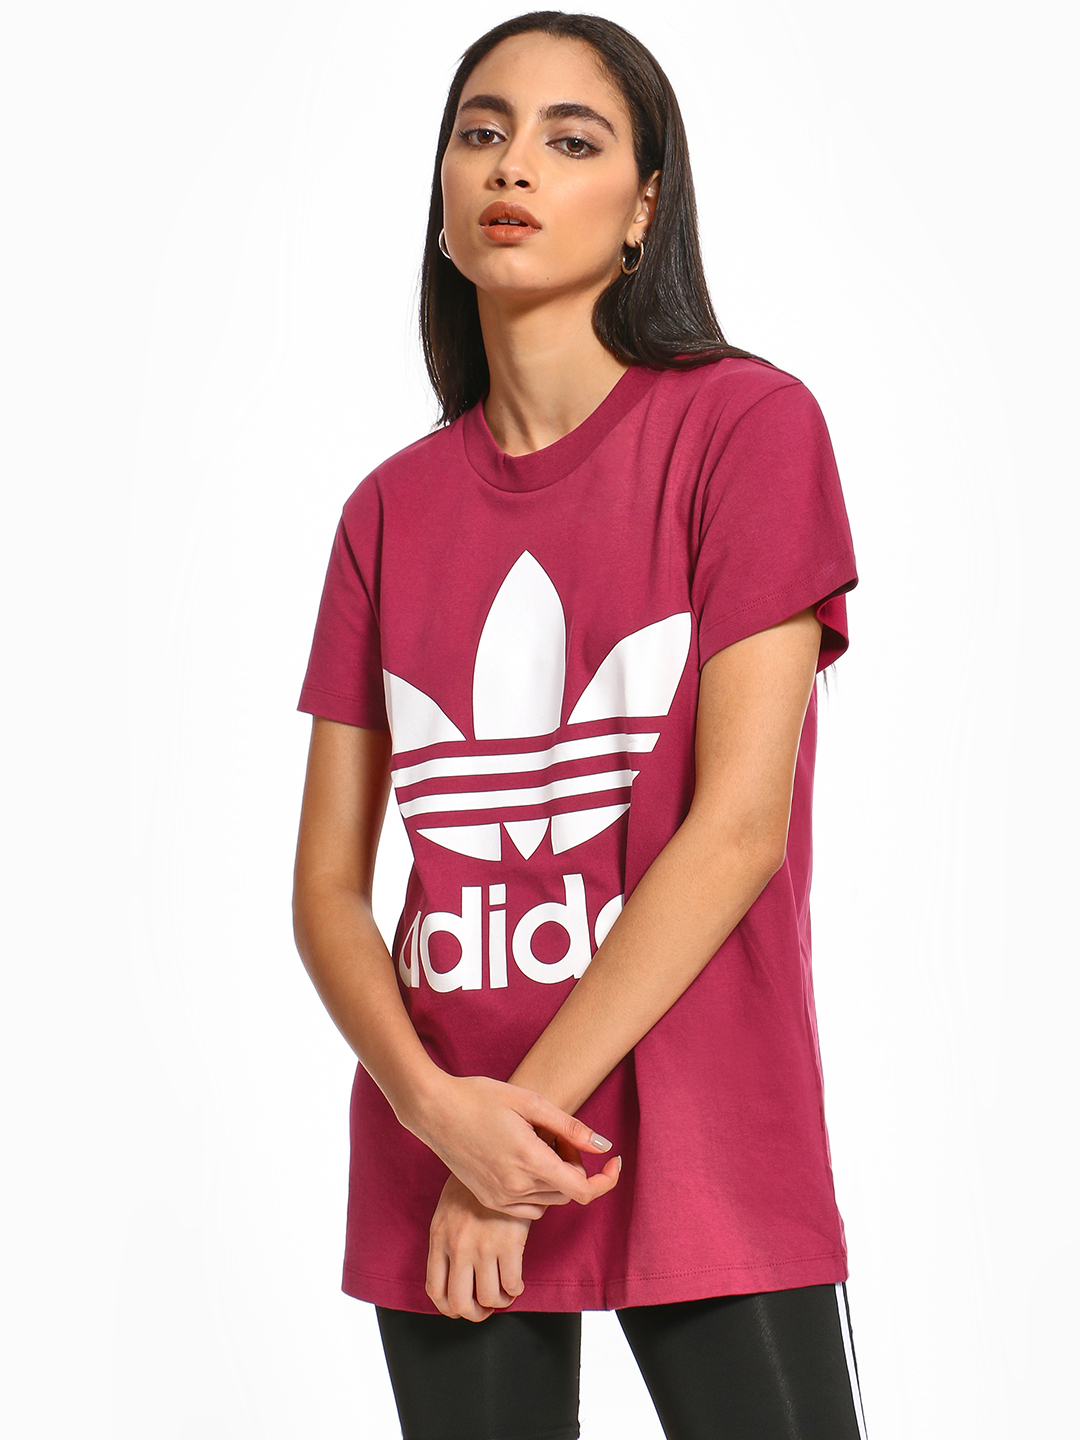 Adidas Originals Pink Oversized Trefoil T-Shirt 1